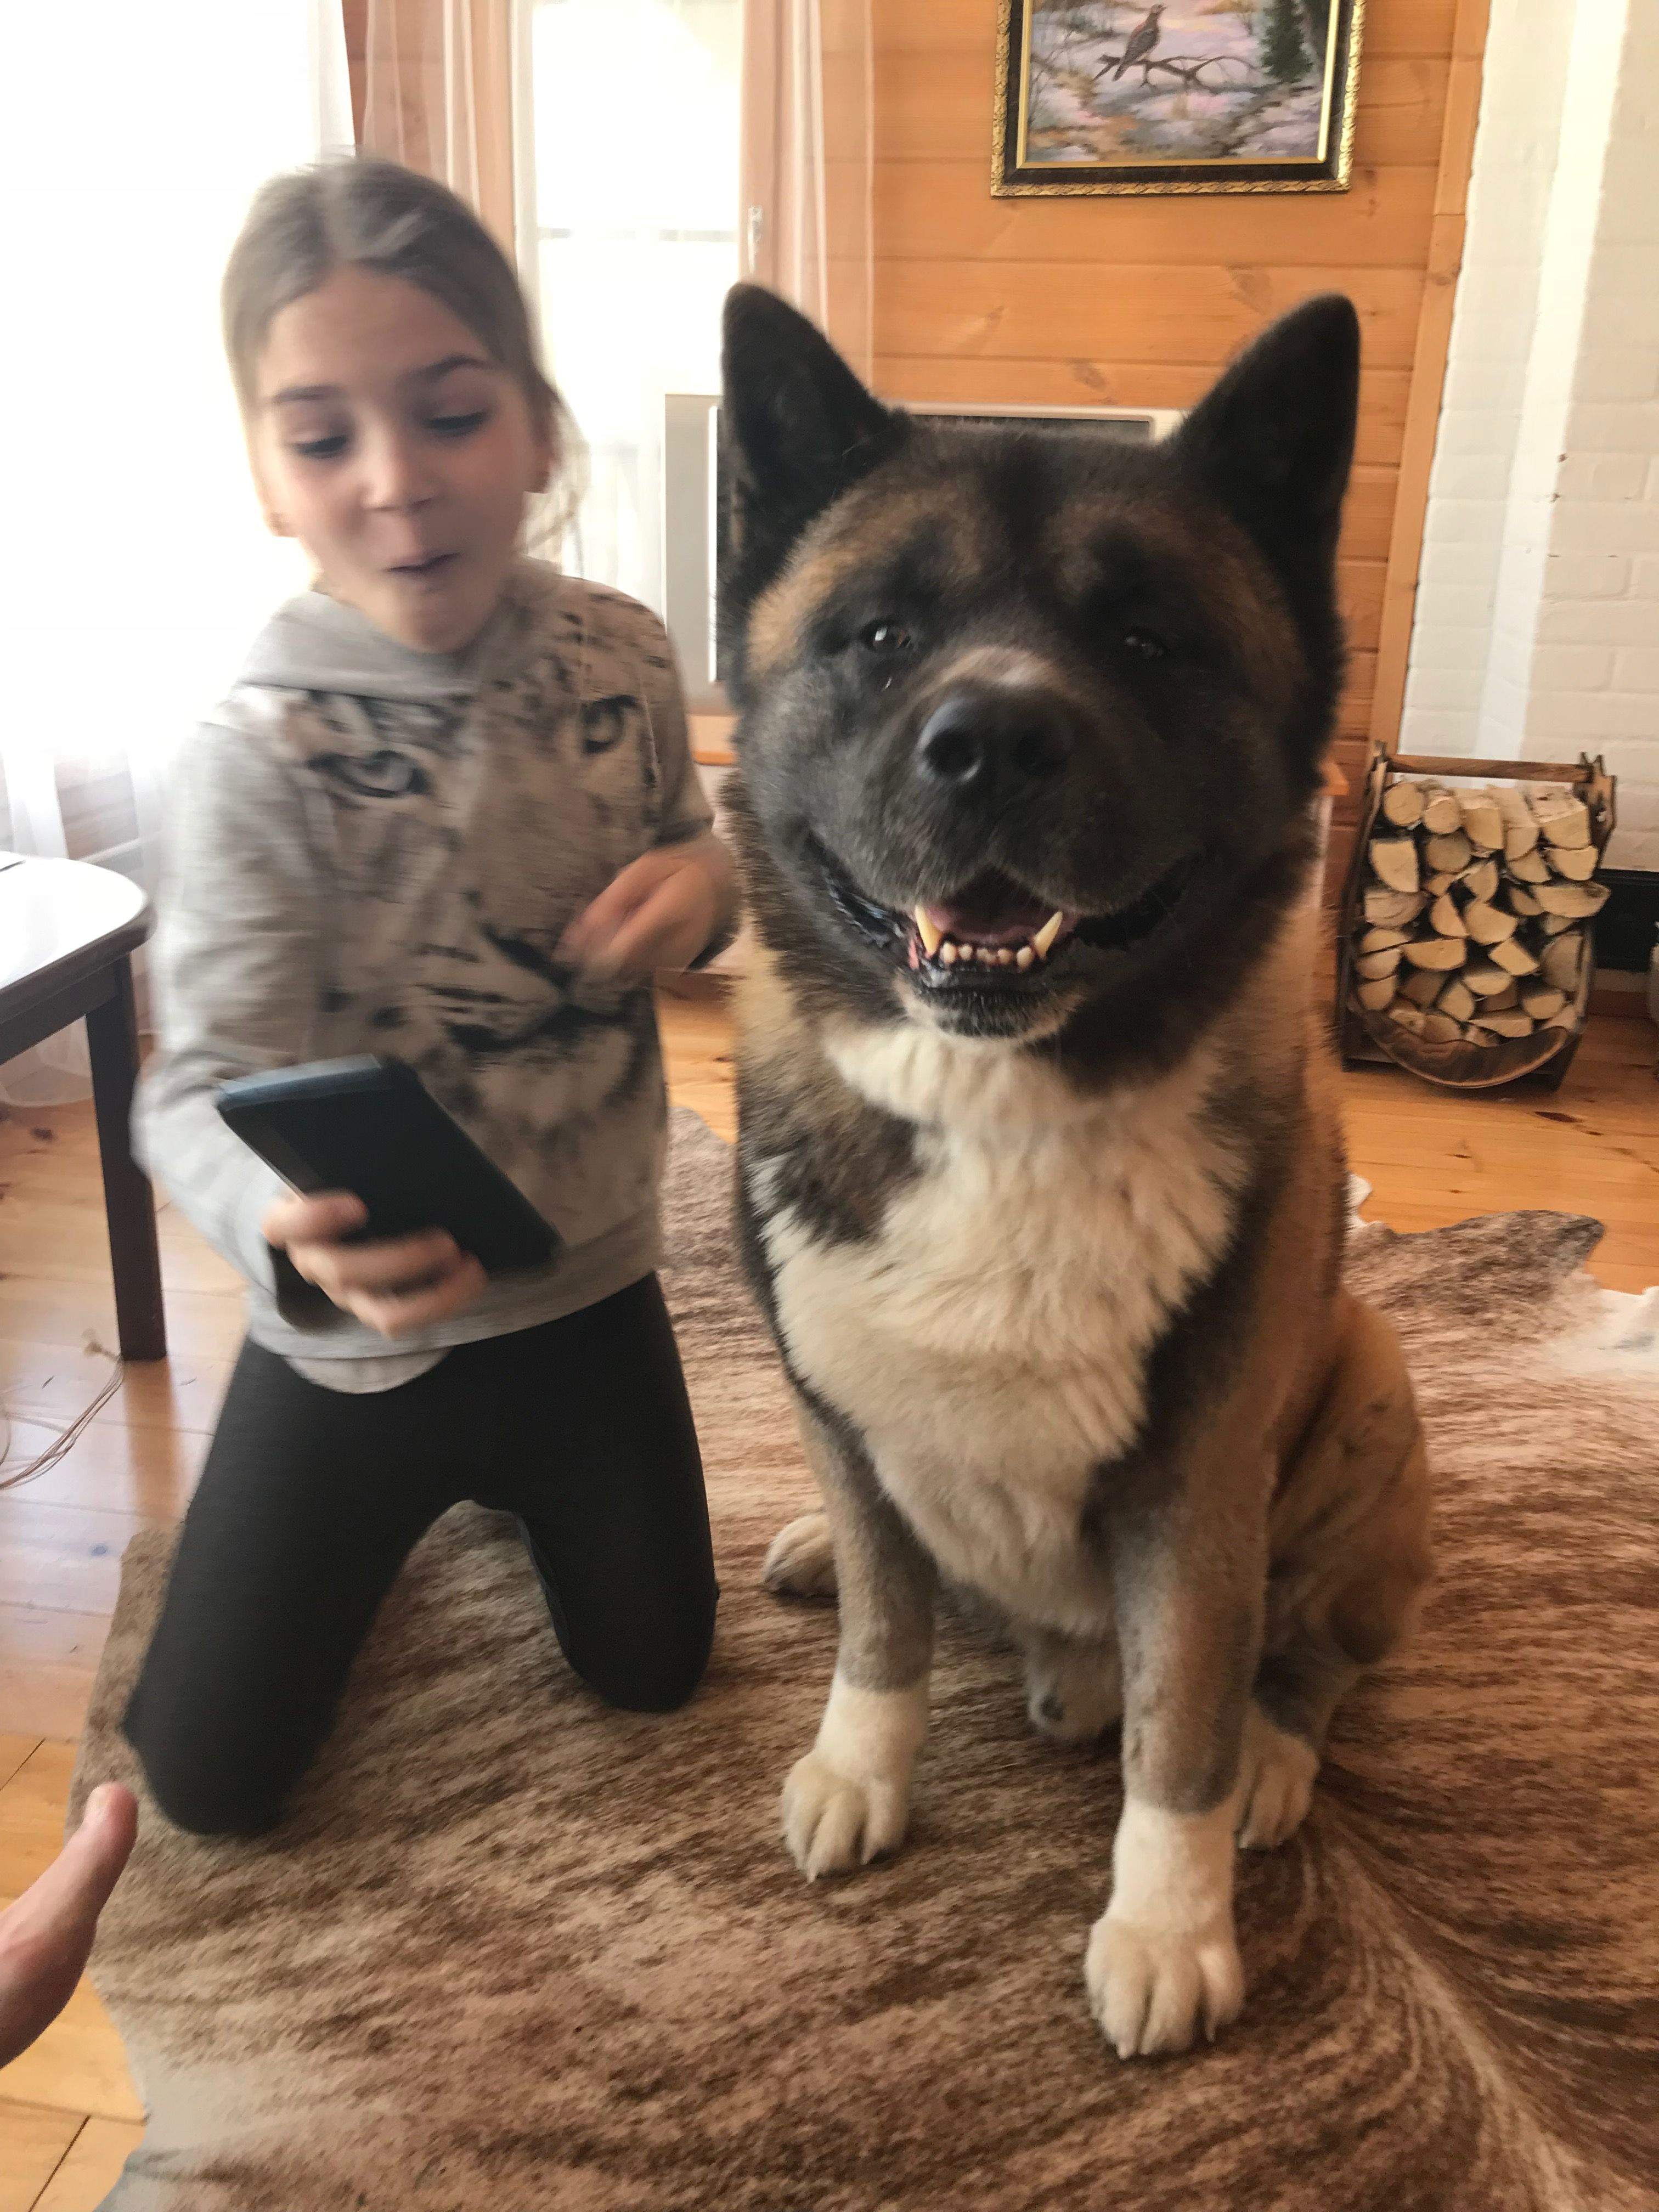 Pin On American Akitas Rufus And Gaze Amerikanskie Akity Rufus I Gejs Amerikanakitat Rufus Ja Gaze